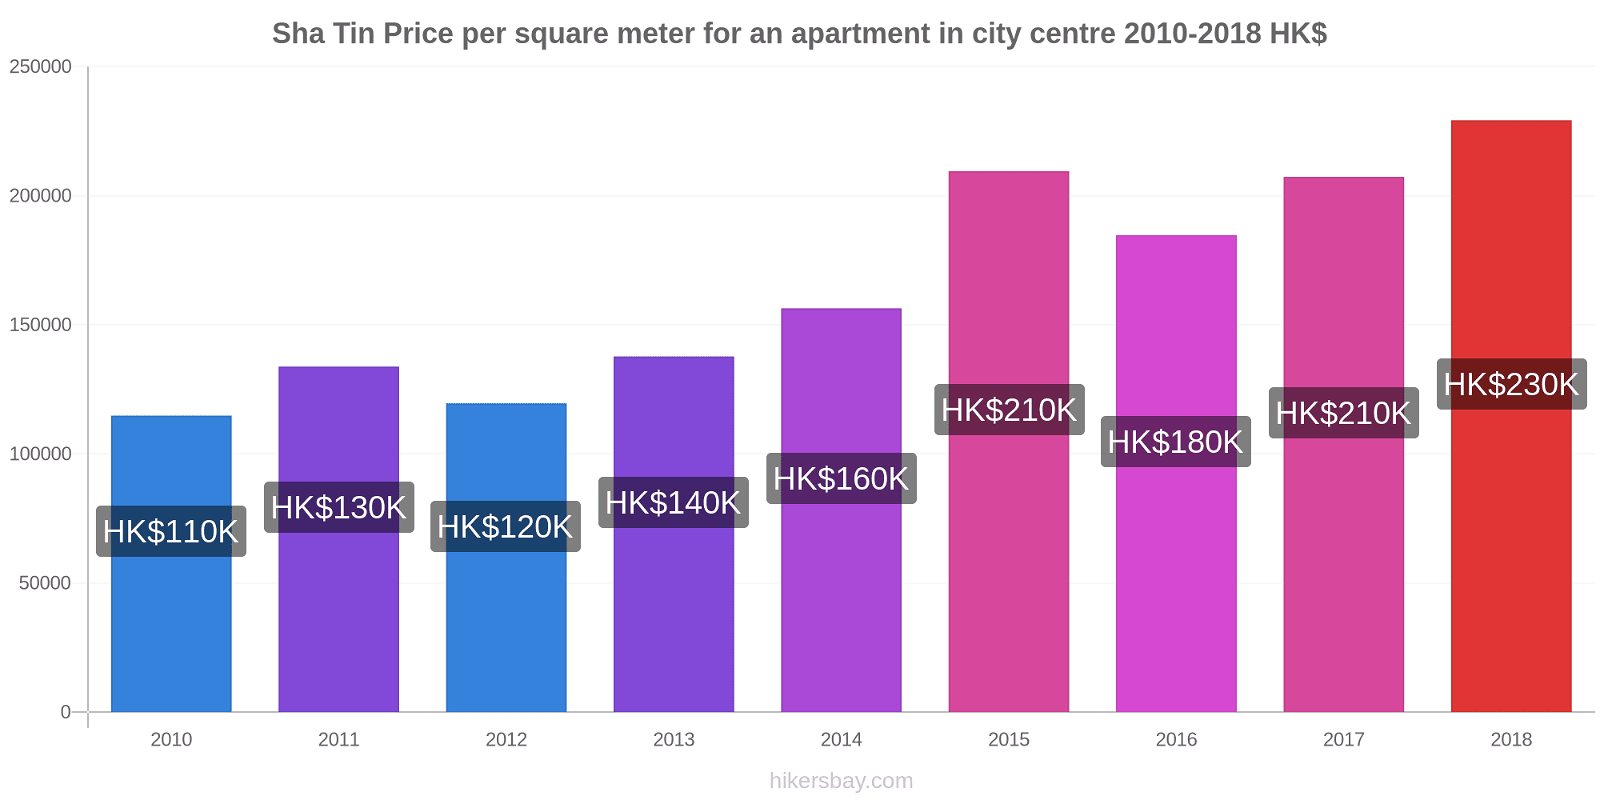 Sha Tin price changes Price per square meter for an apartment in city centre hikersbay.com